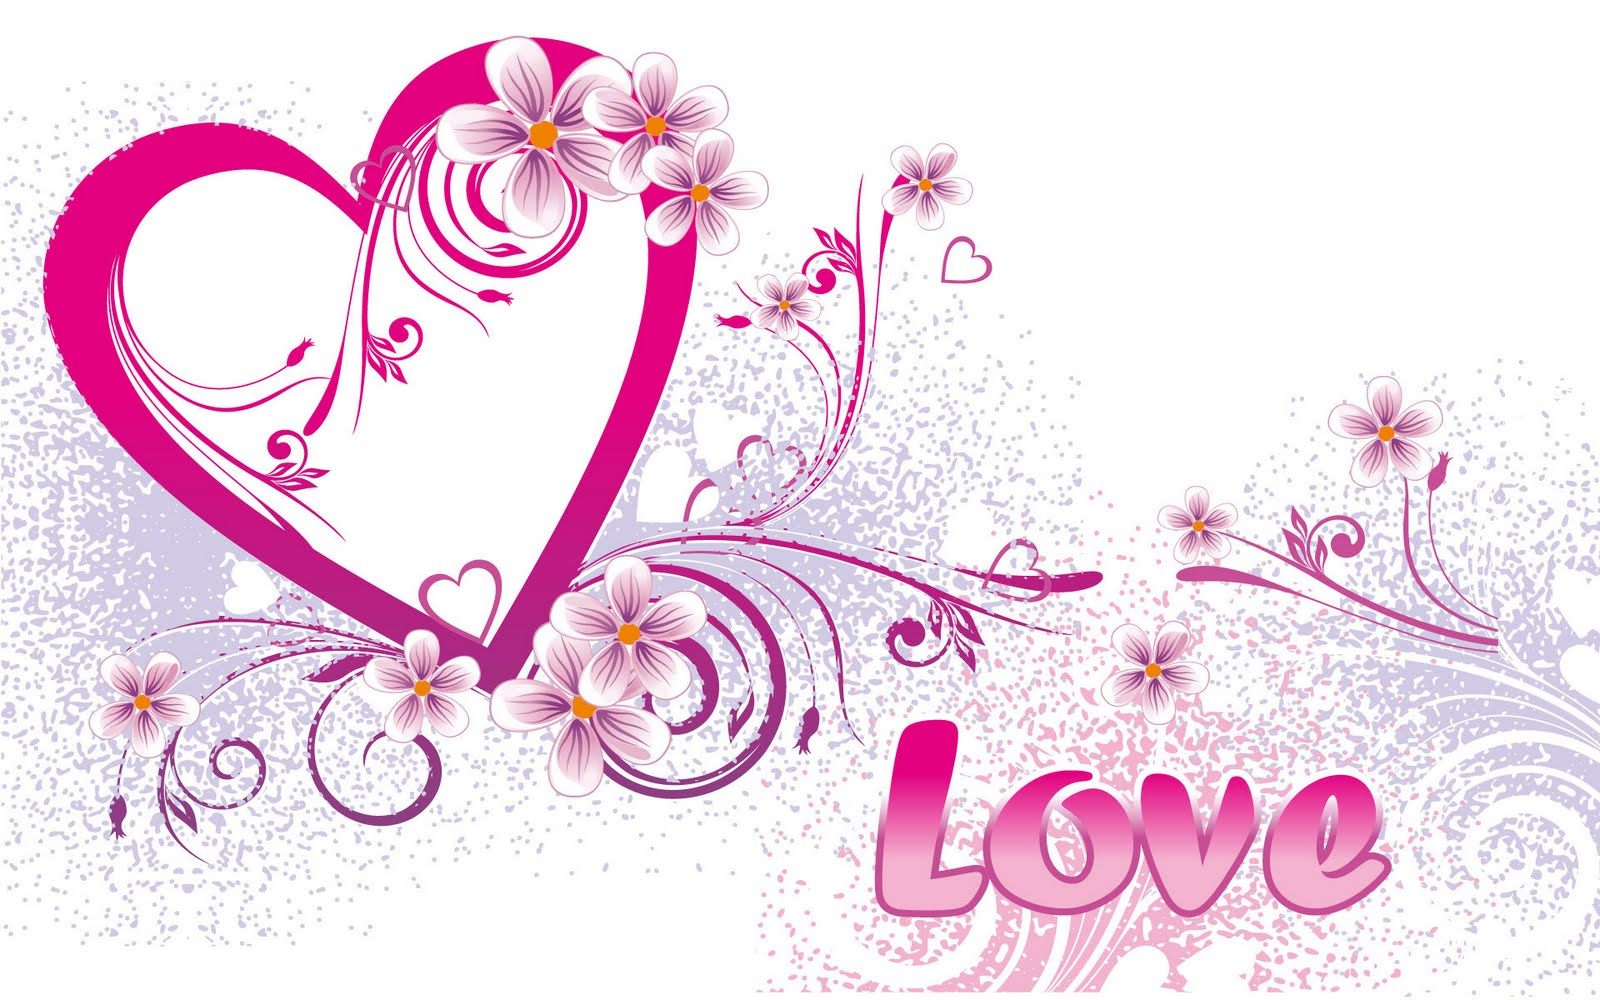 love wallpapers the best - photo #10